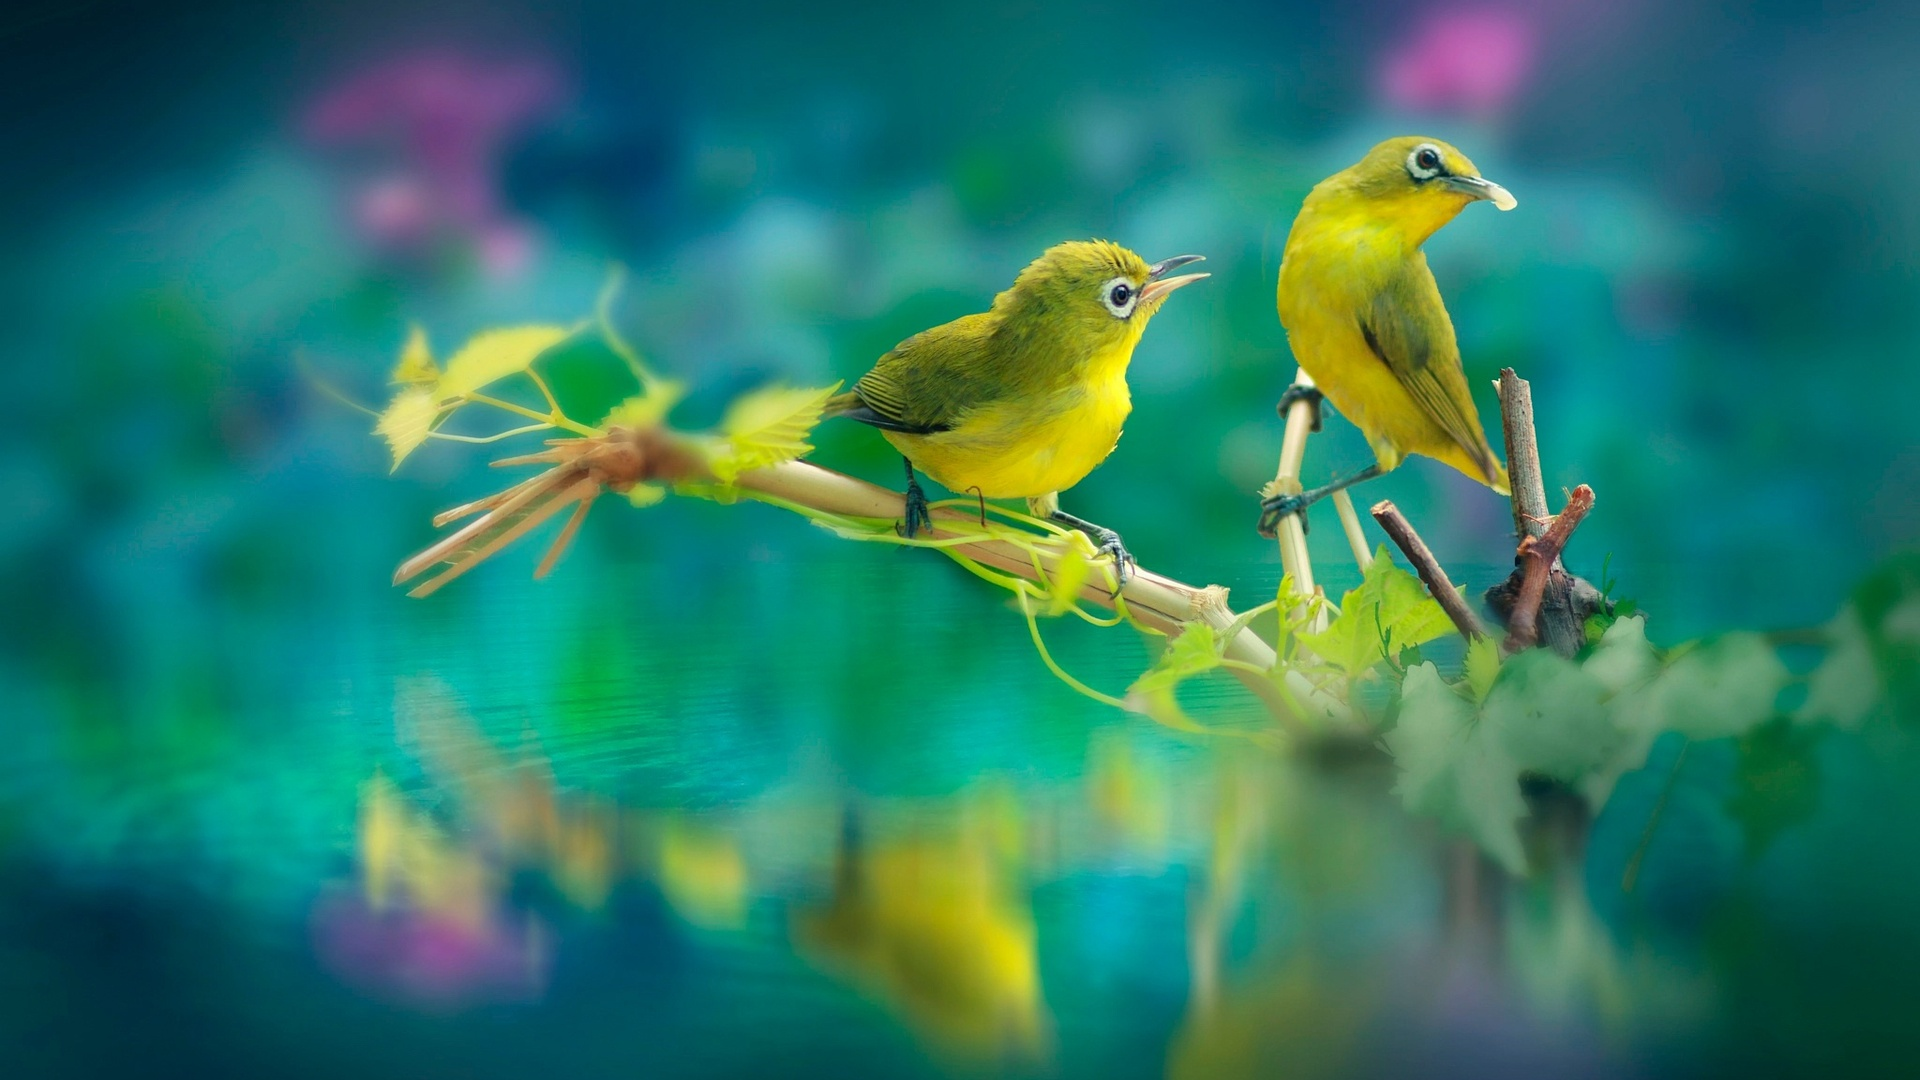 1920x1080 Beautiful Birds Laptop Full Hd 1080p Hd 4k Wallpapers Images Backgrounds Photos And Pictures